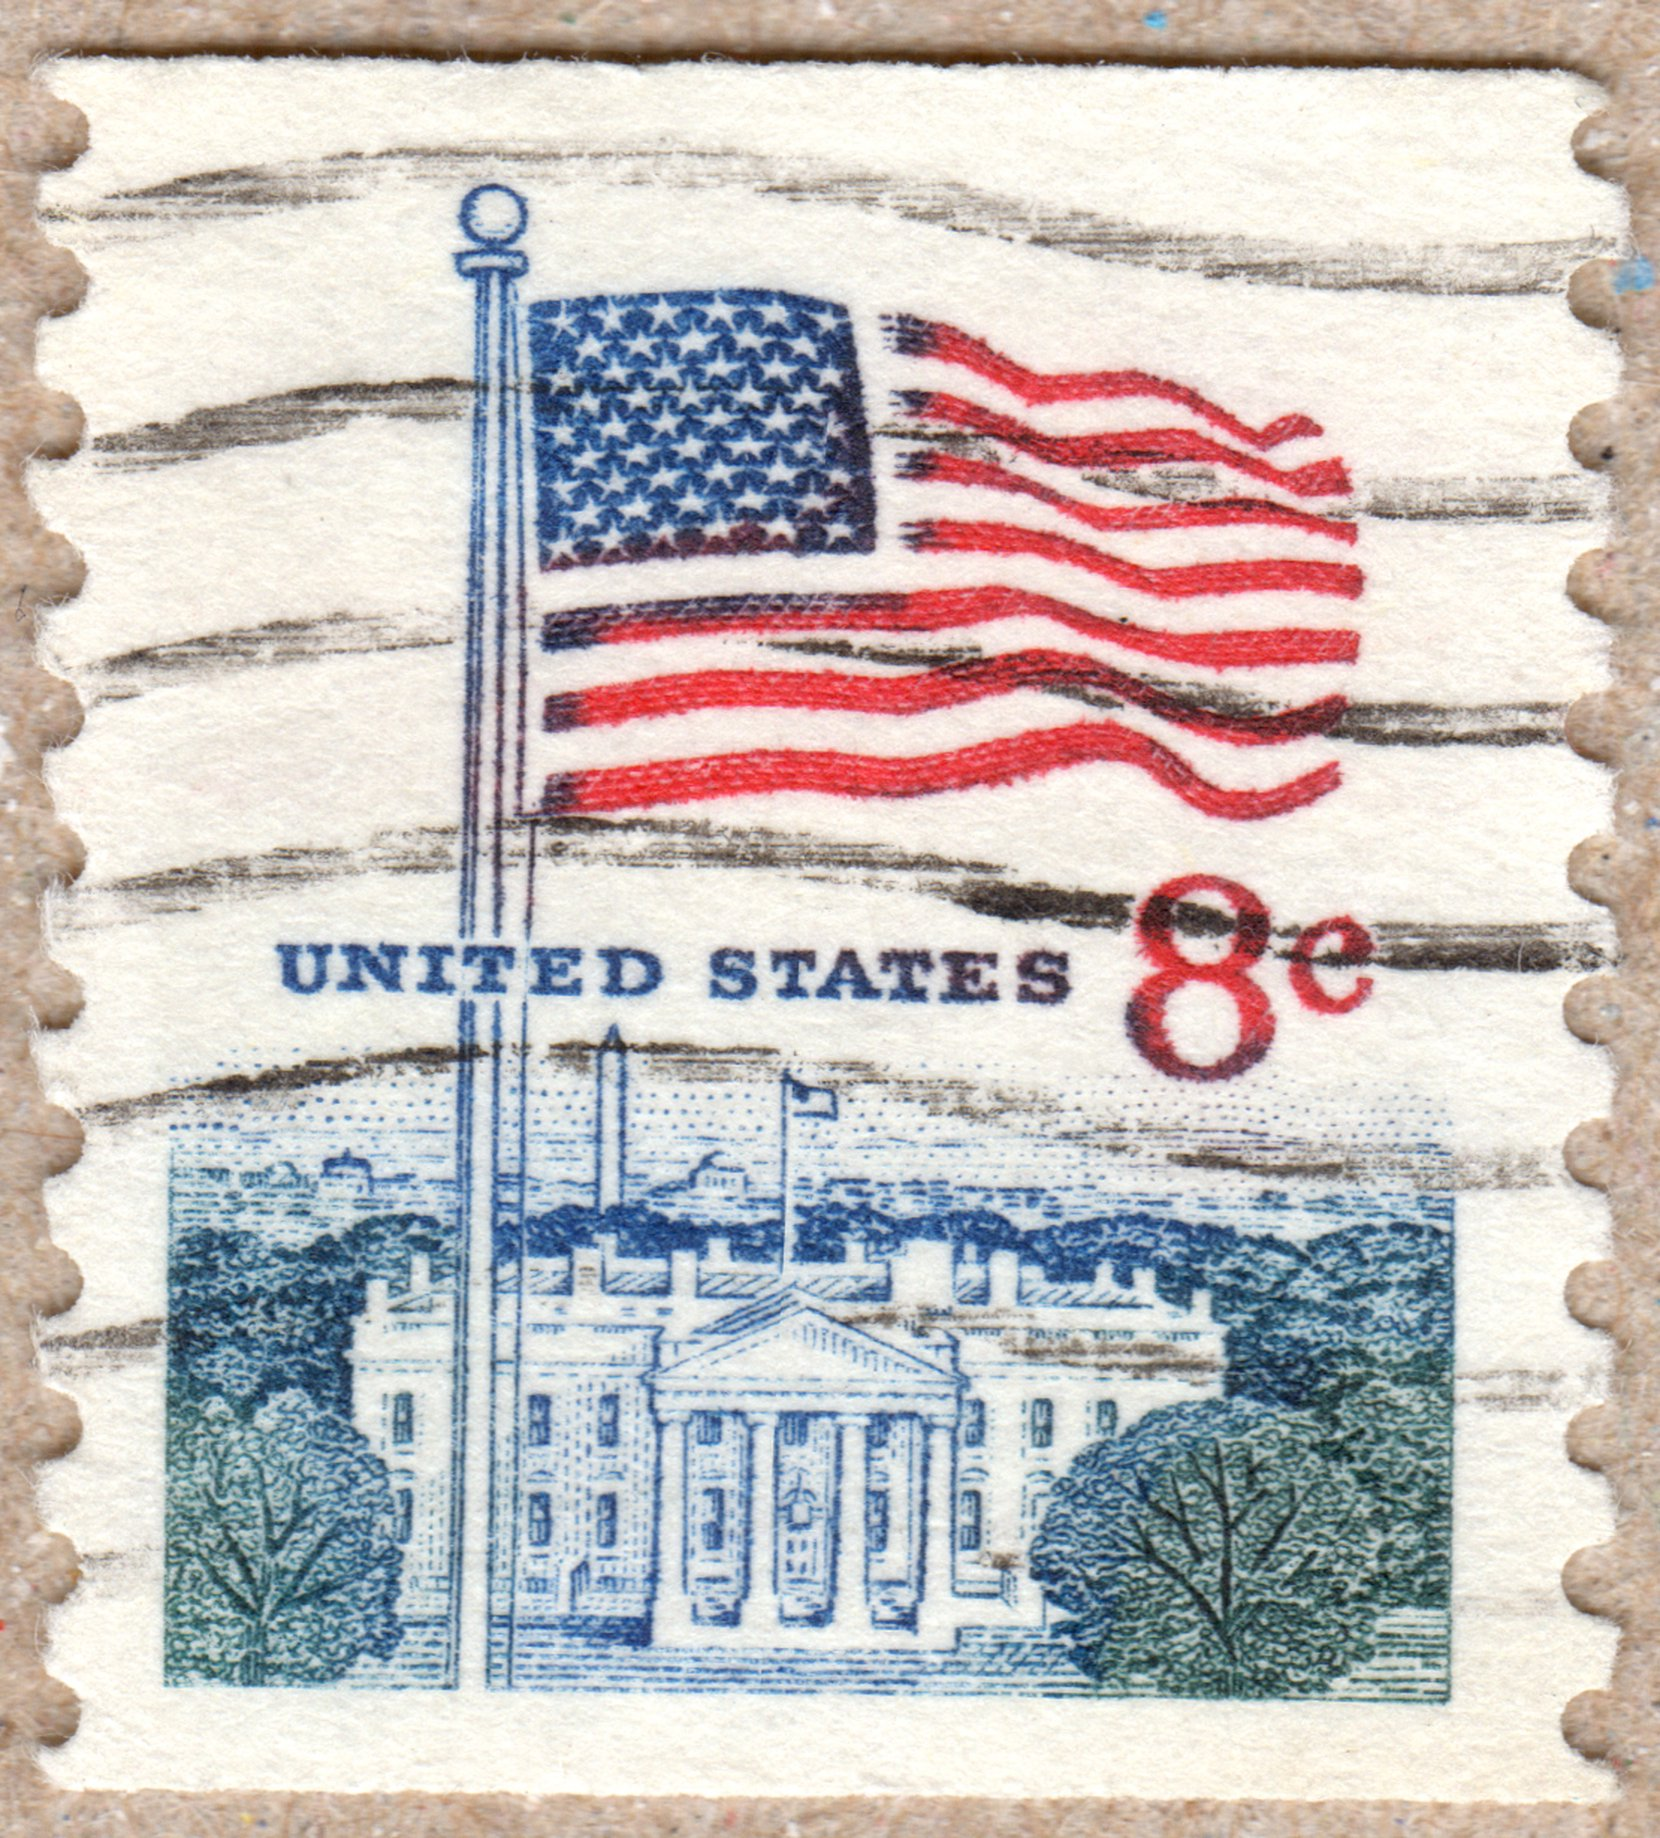 united states 8¢ stamp philately postage stamps